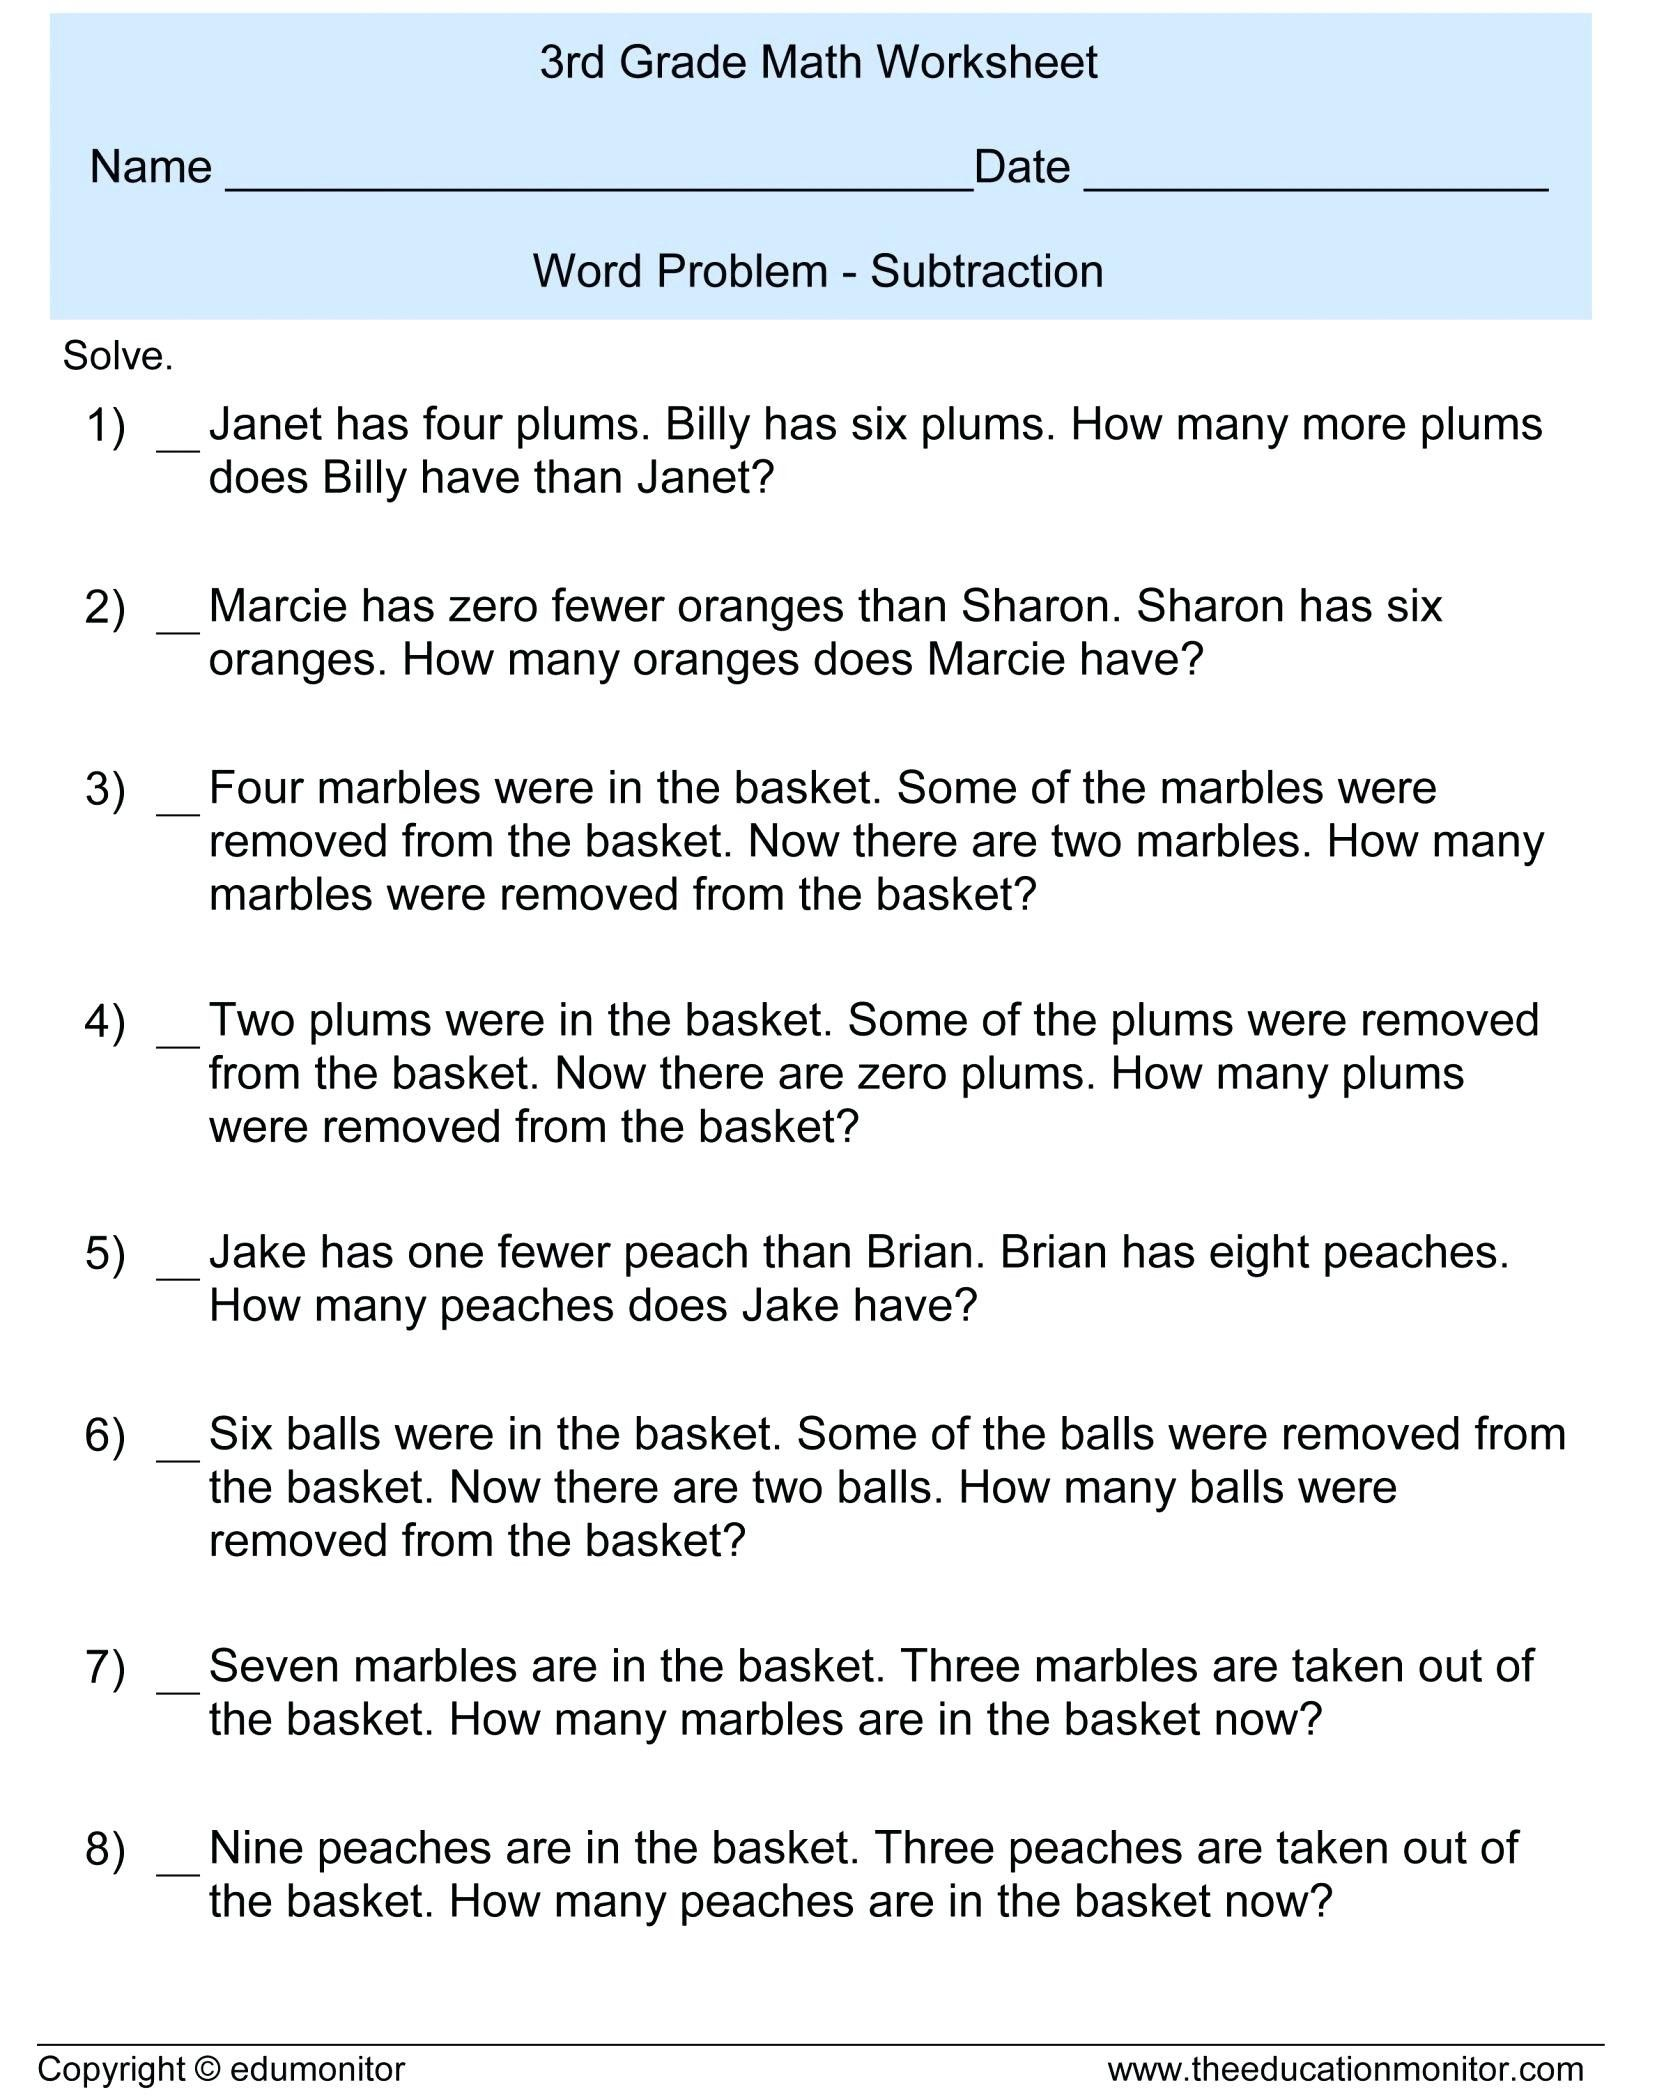 medium resolution of Third Grade Math Word Problems Worksheets   Printable Worksheets and  Activities for Teachers